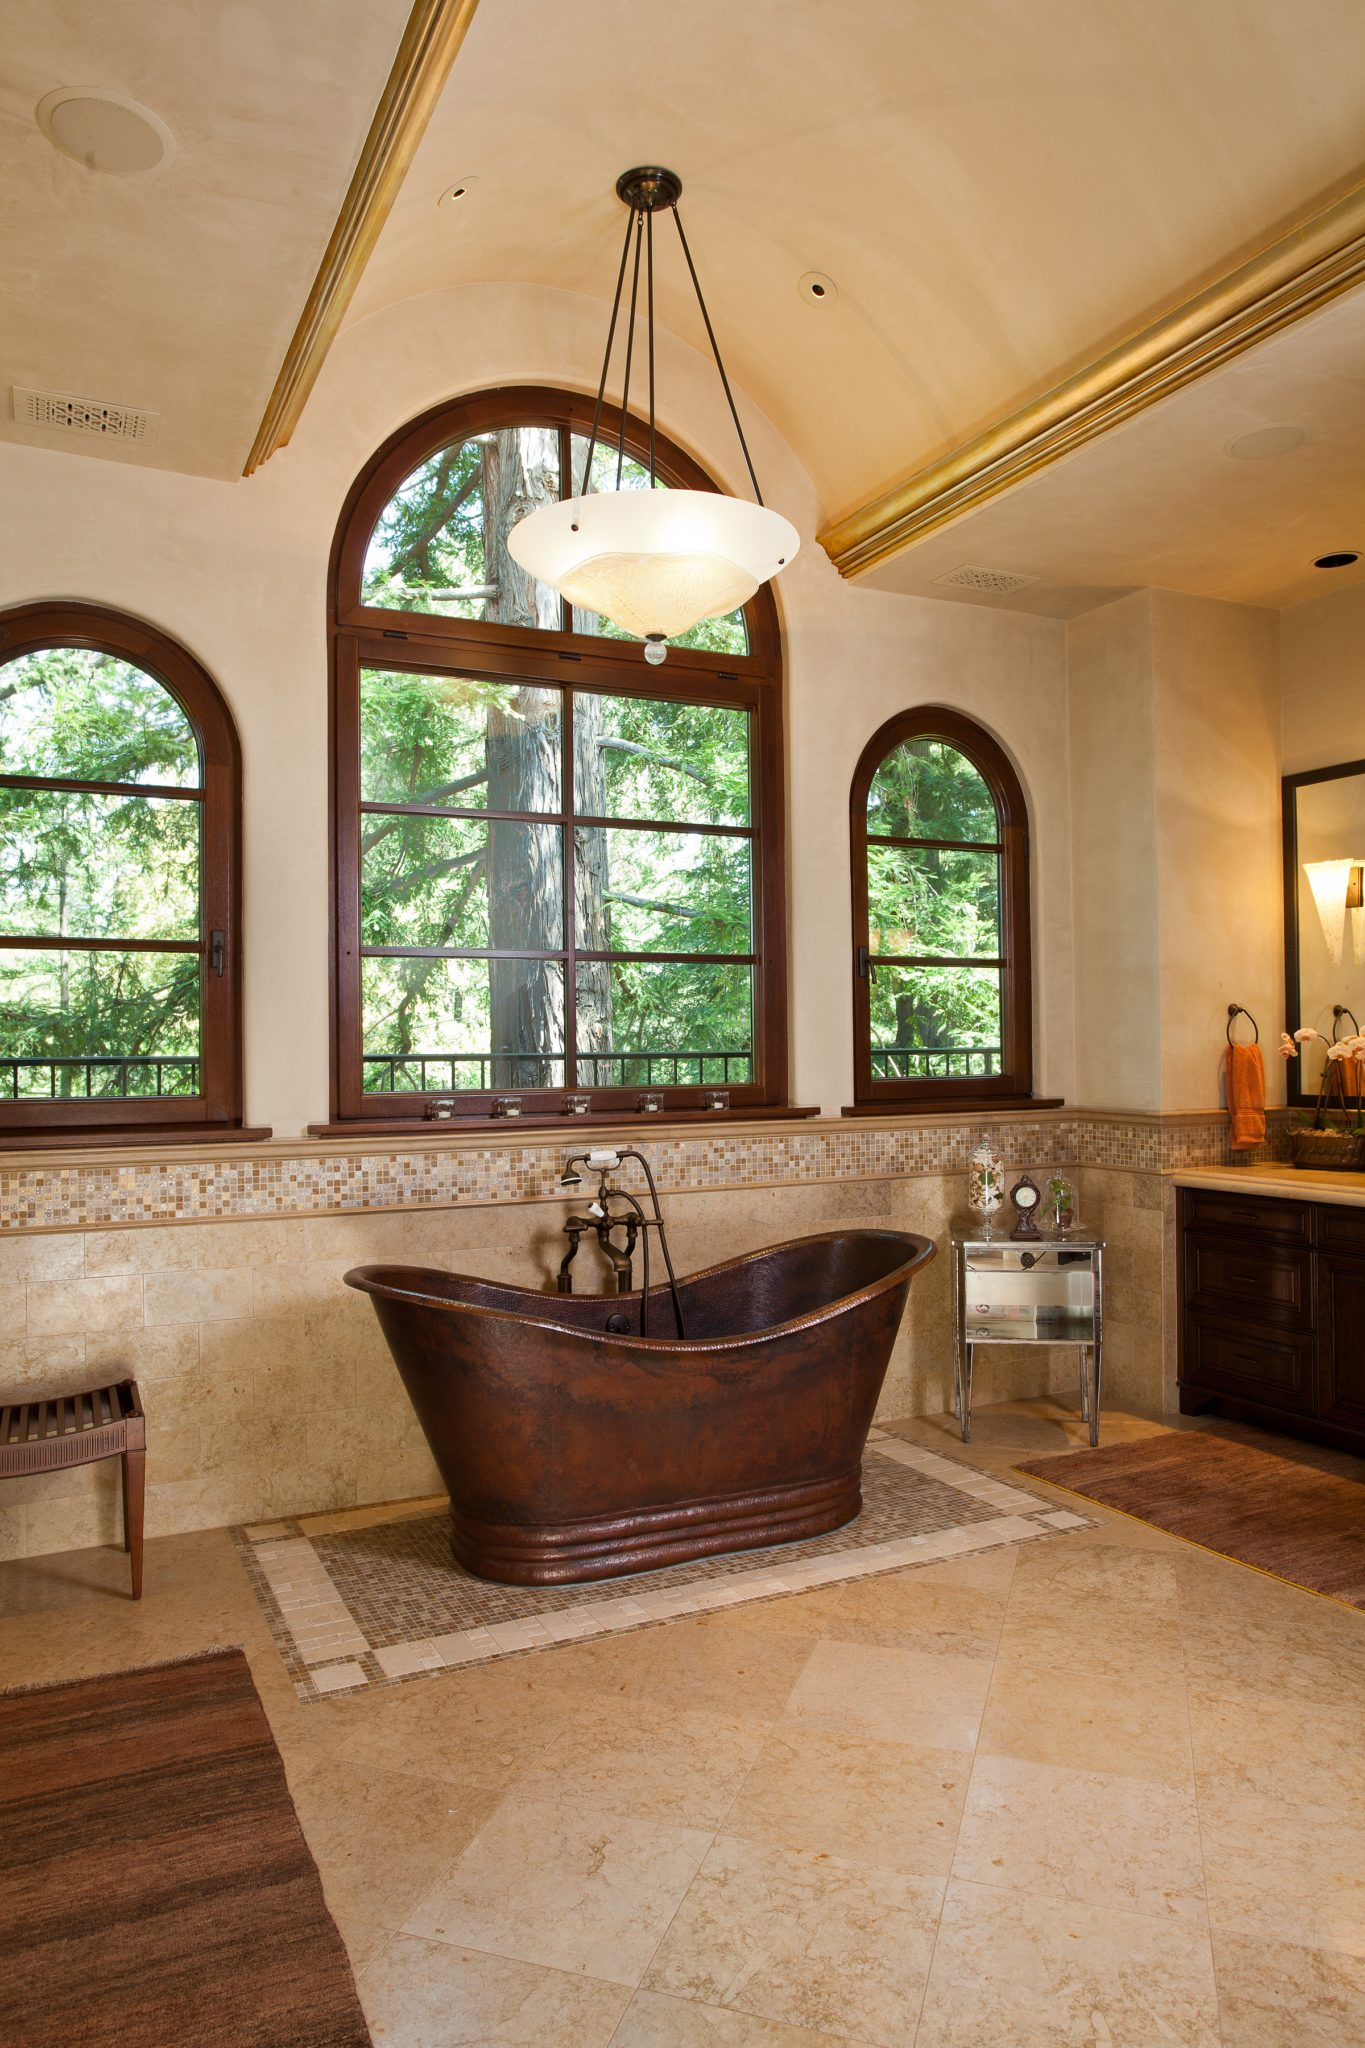 Master bath with barrel vault ceiling, arched windows and a freestanding bathtub by Alison Whittaker Design